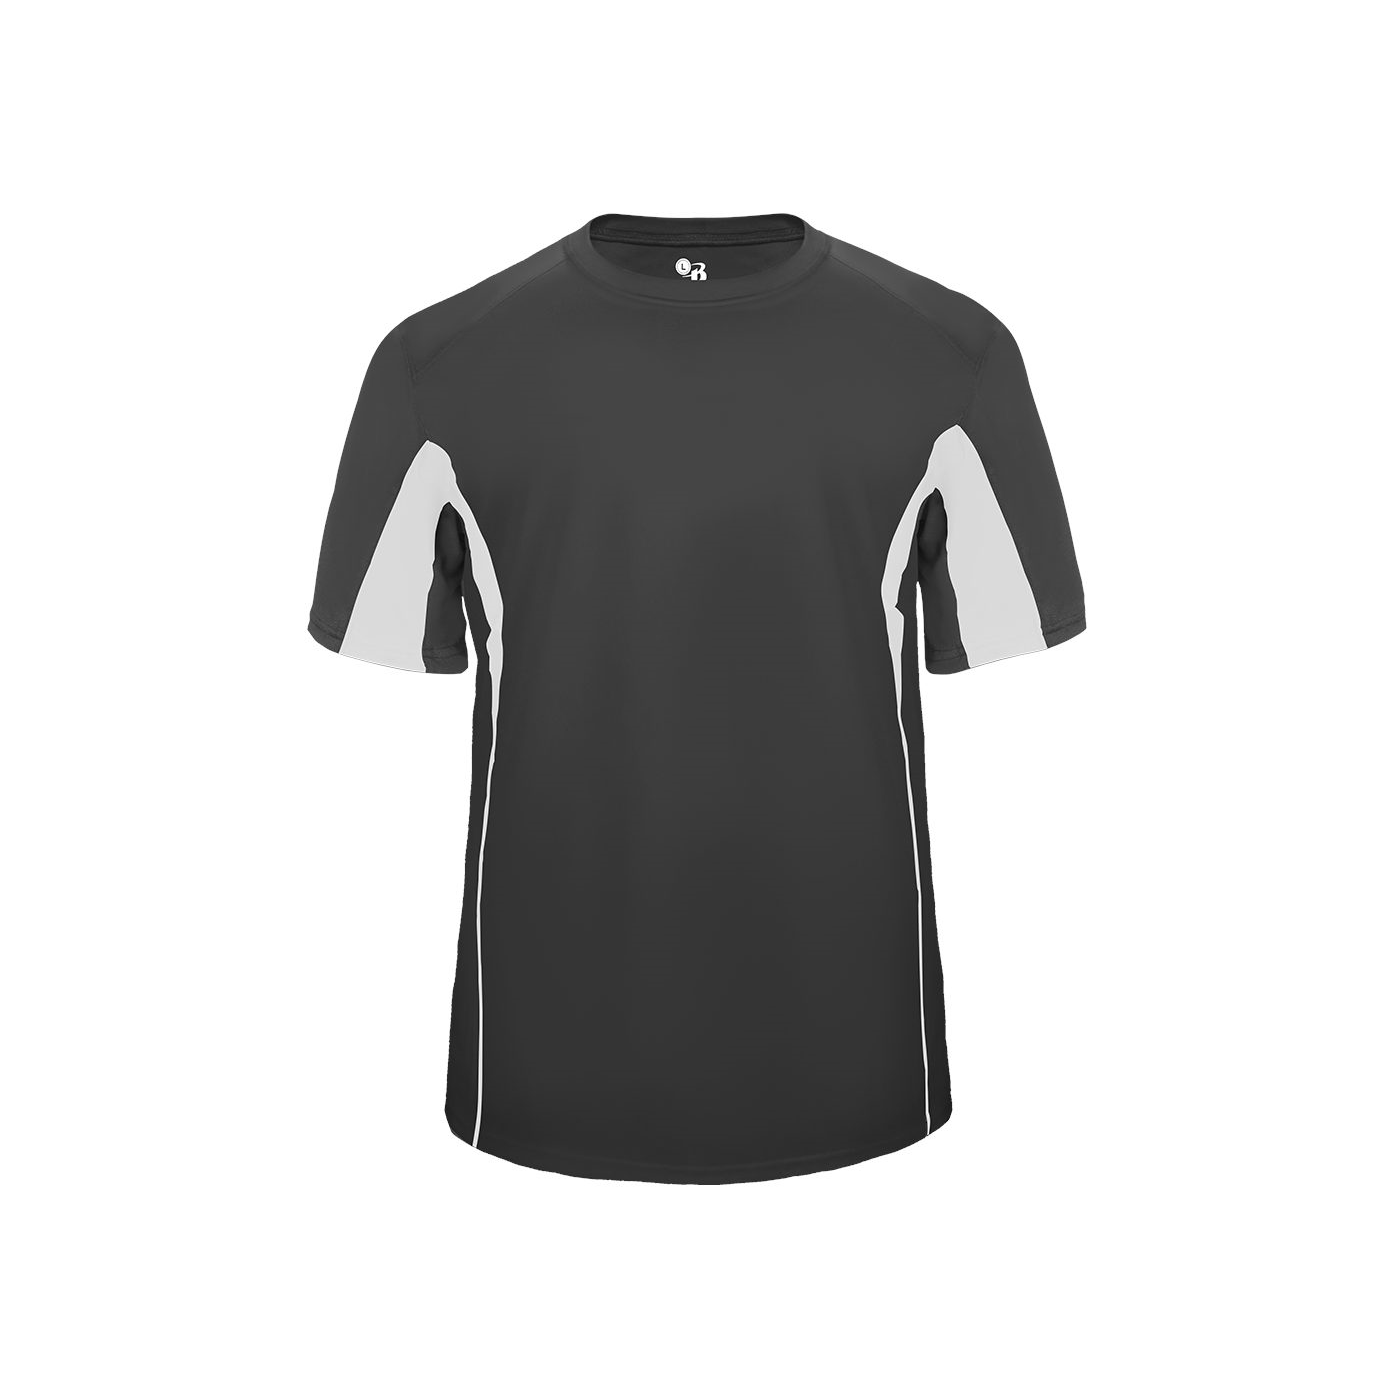 Badger Sport Performance Athletic Apparel T Shirts All